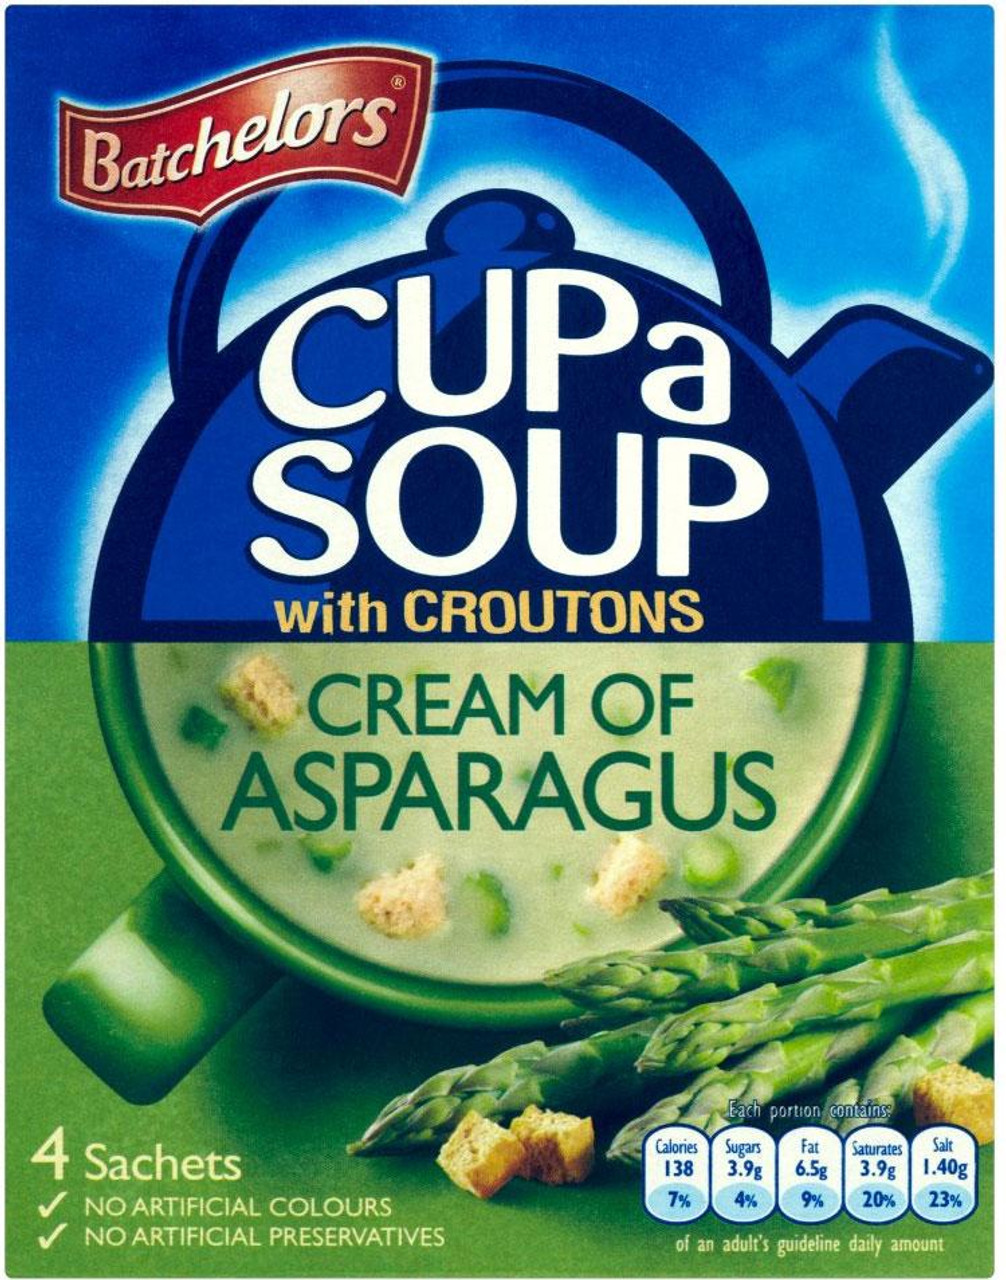 Batchelors - Cup A Soup with Croutons, Cream of Asparagus 4pk